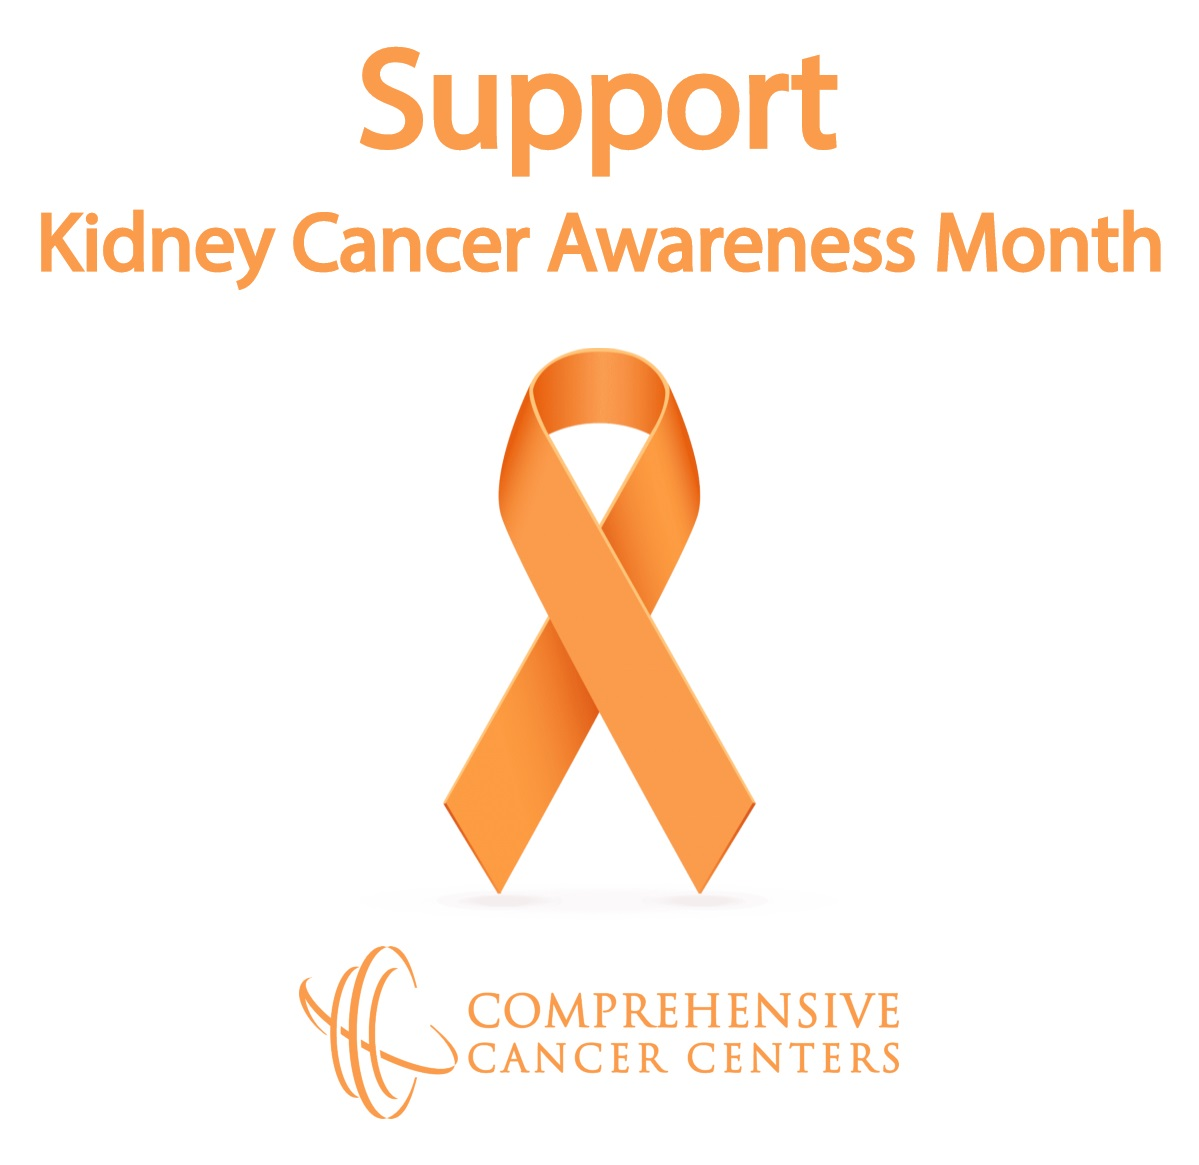 Support Kidney Cancer Awareness Month This March Comprehensive Cancer Centers